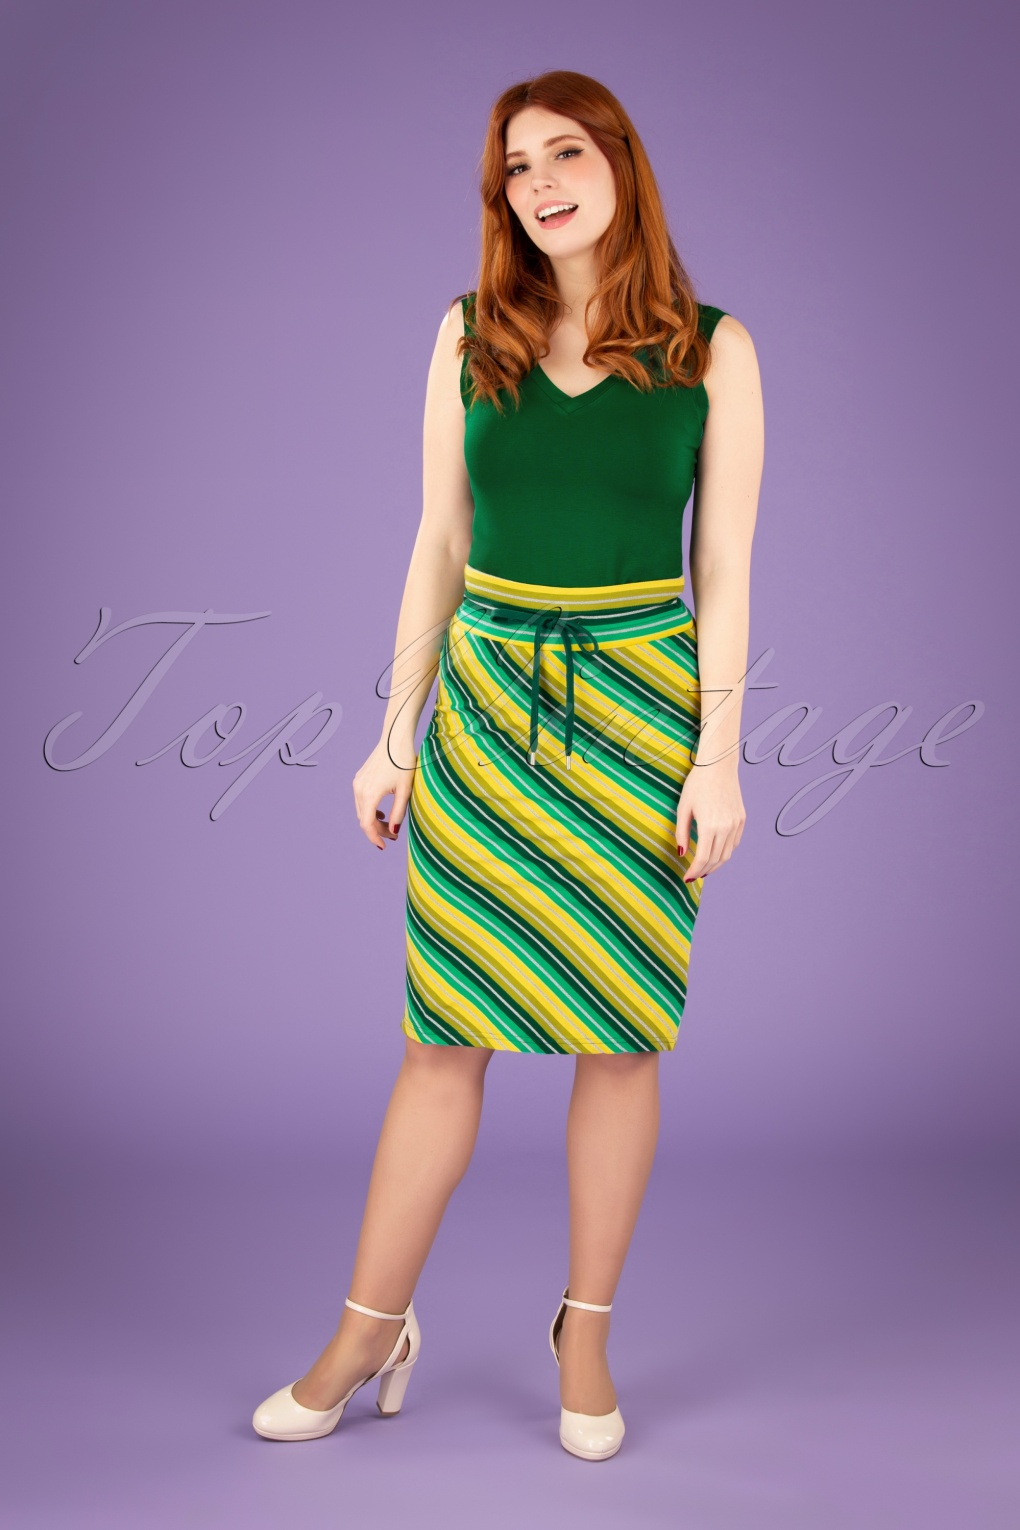 1960s Style Clothing & 60s Fashion 60s Thula Striped Tube Skirt in Leaf and Seaweed £33.02 AT vintagedancer.com